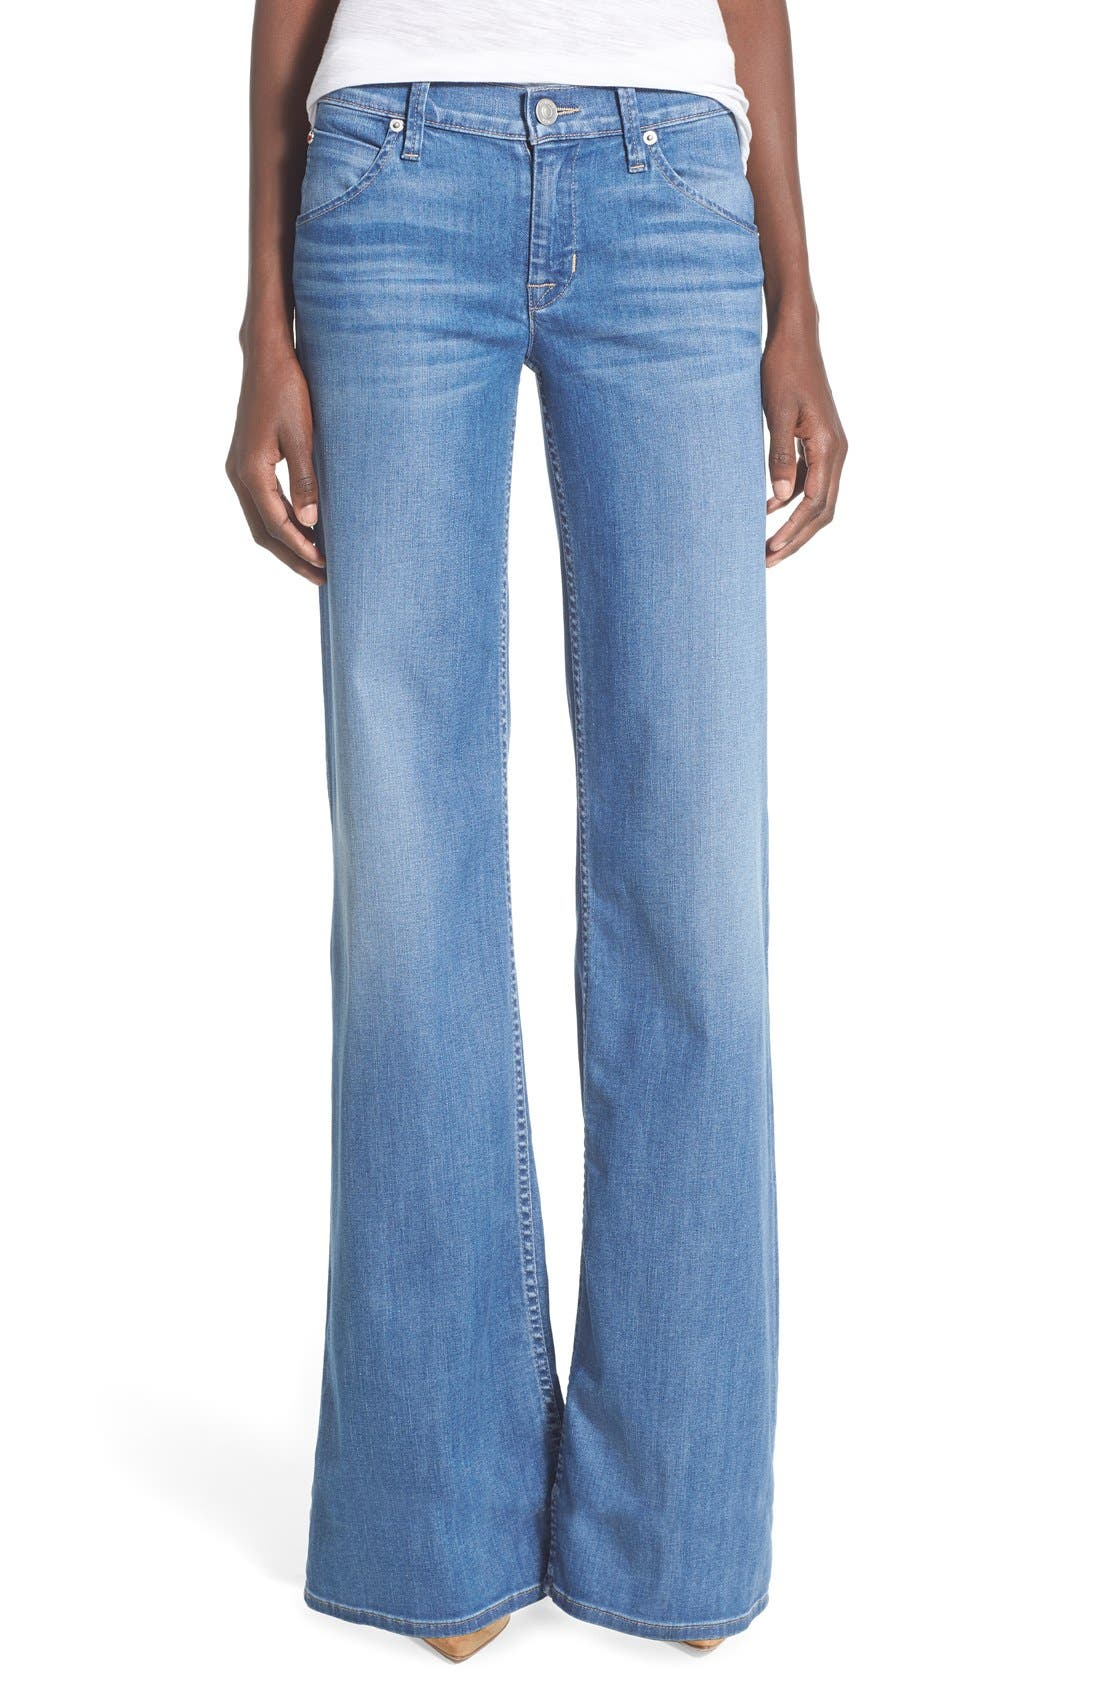 Main Image - Hudson Jeans 'Brooke' Wide Leg Jeans (Nightingale)